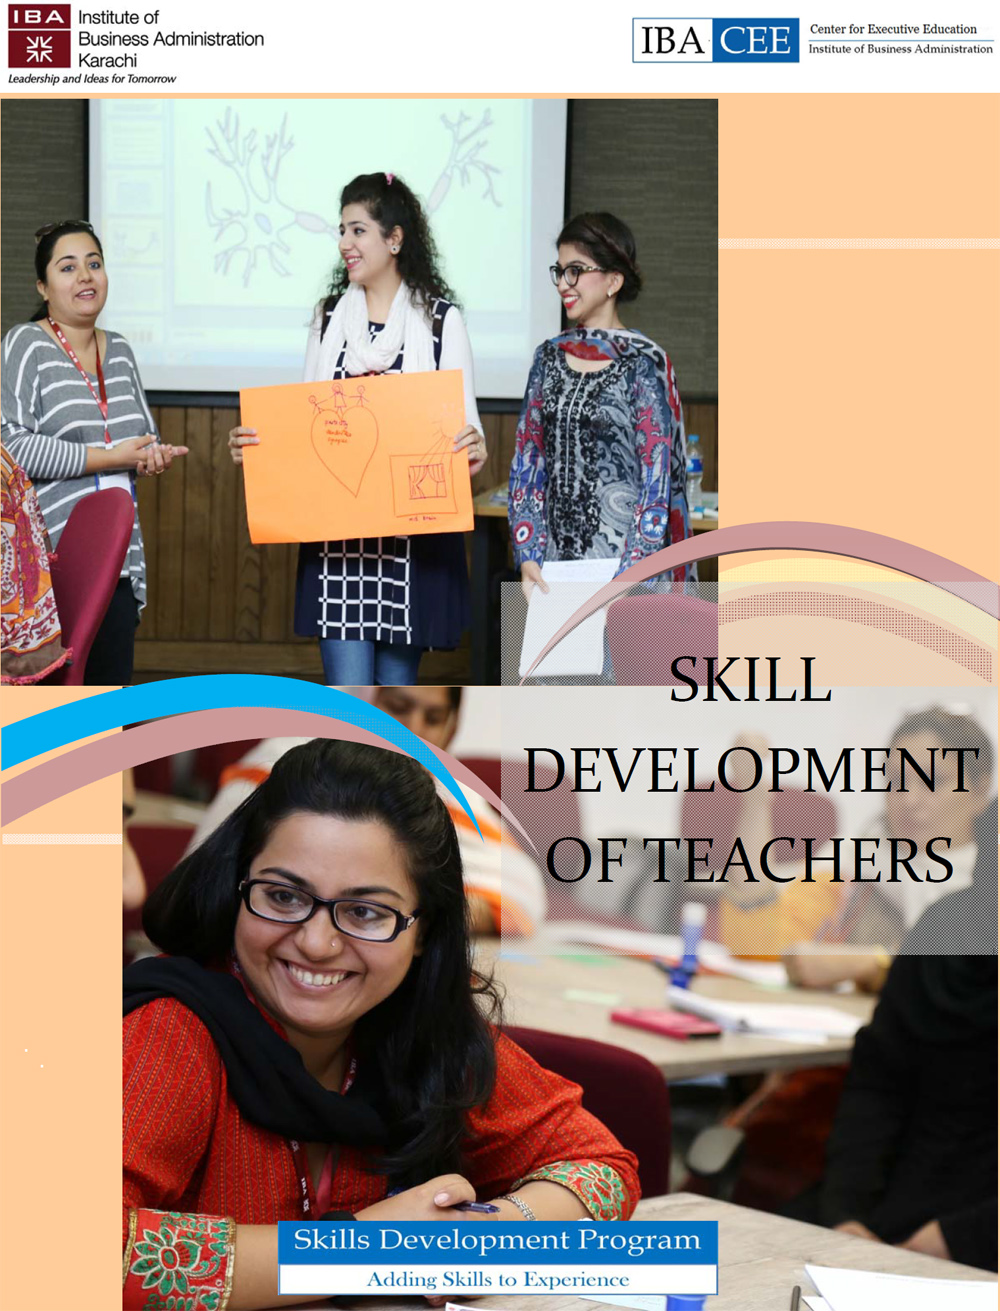 Skills Development of Teachers